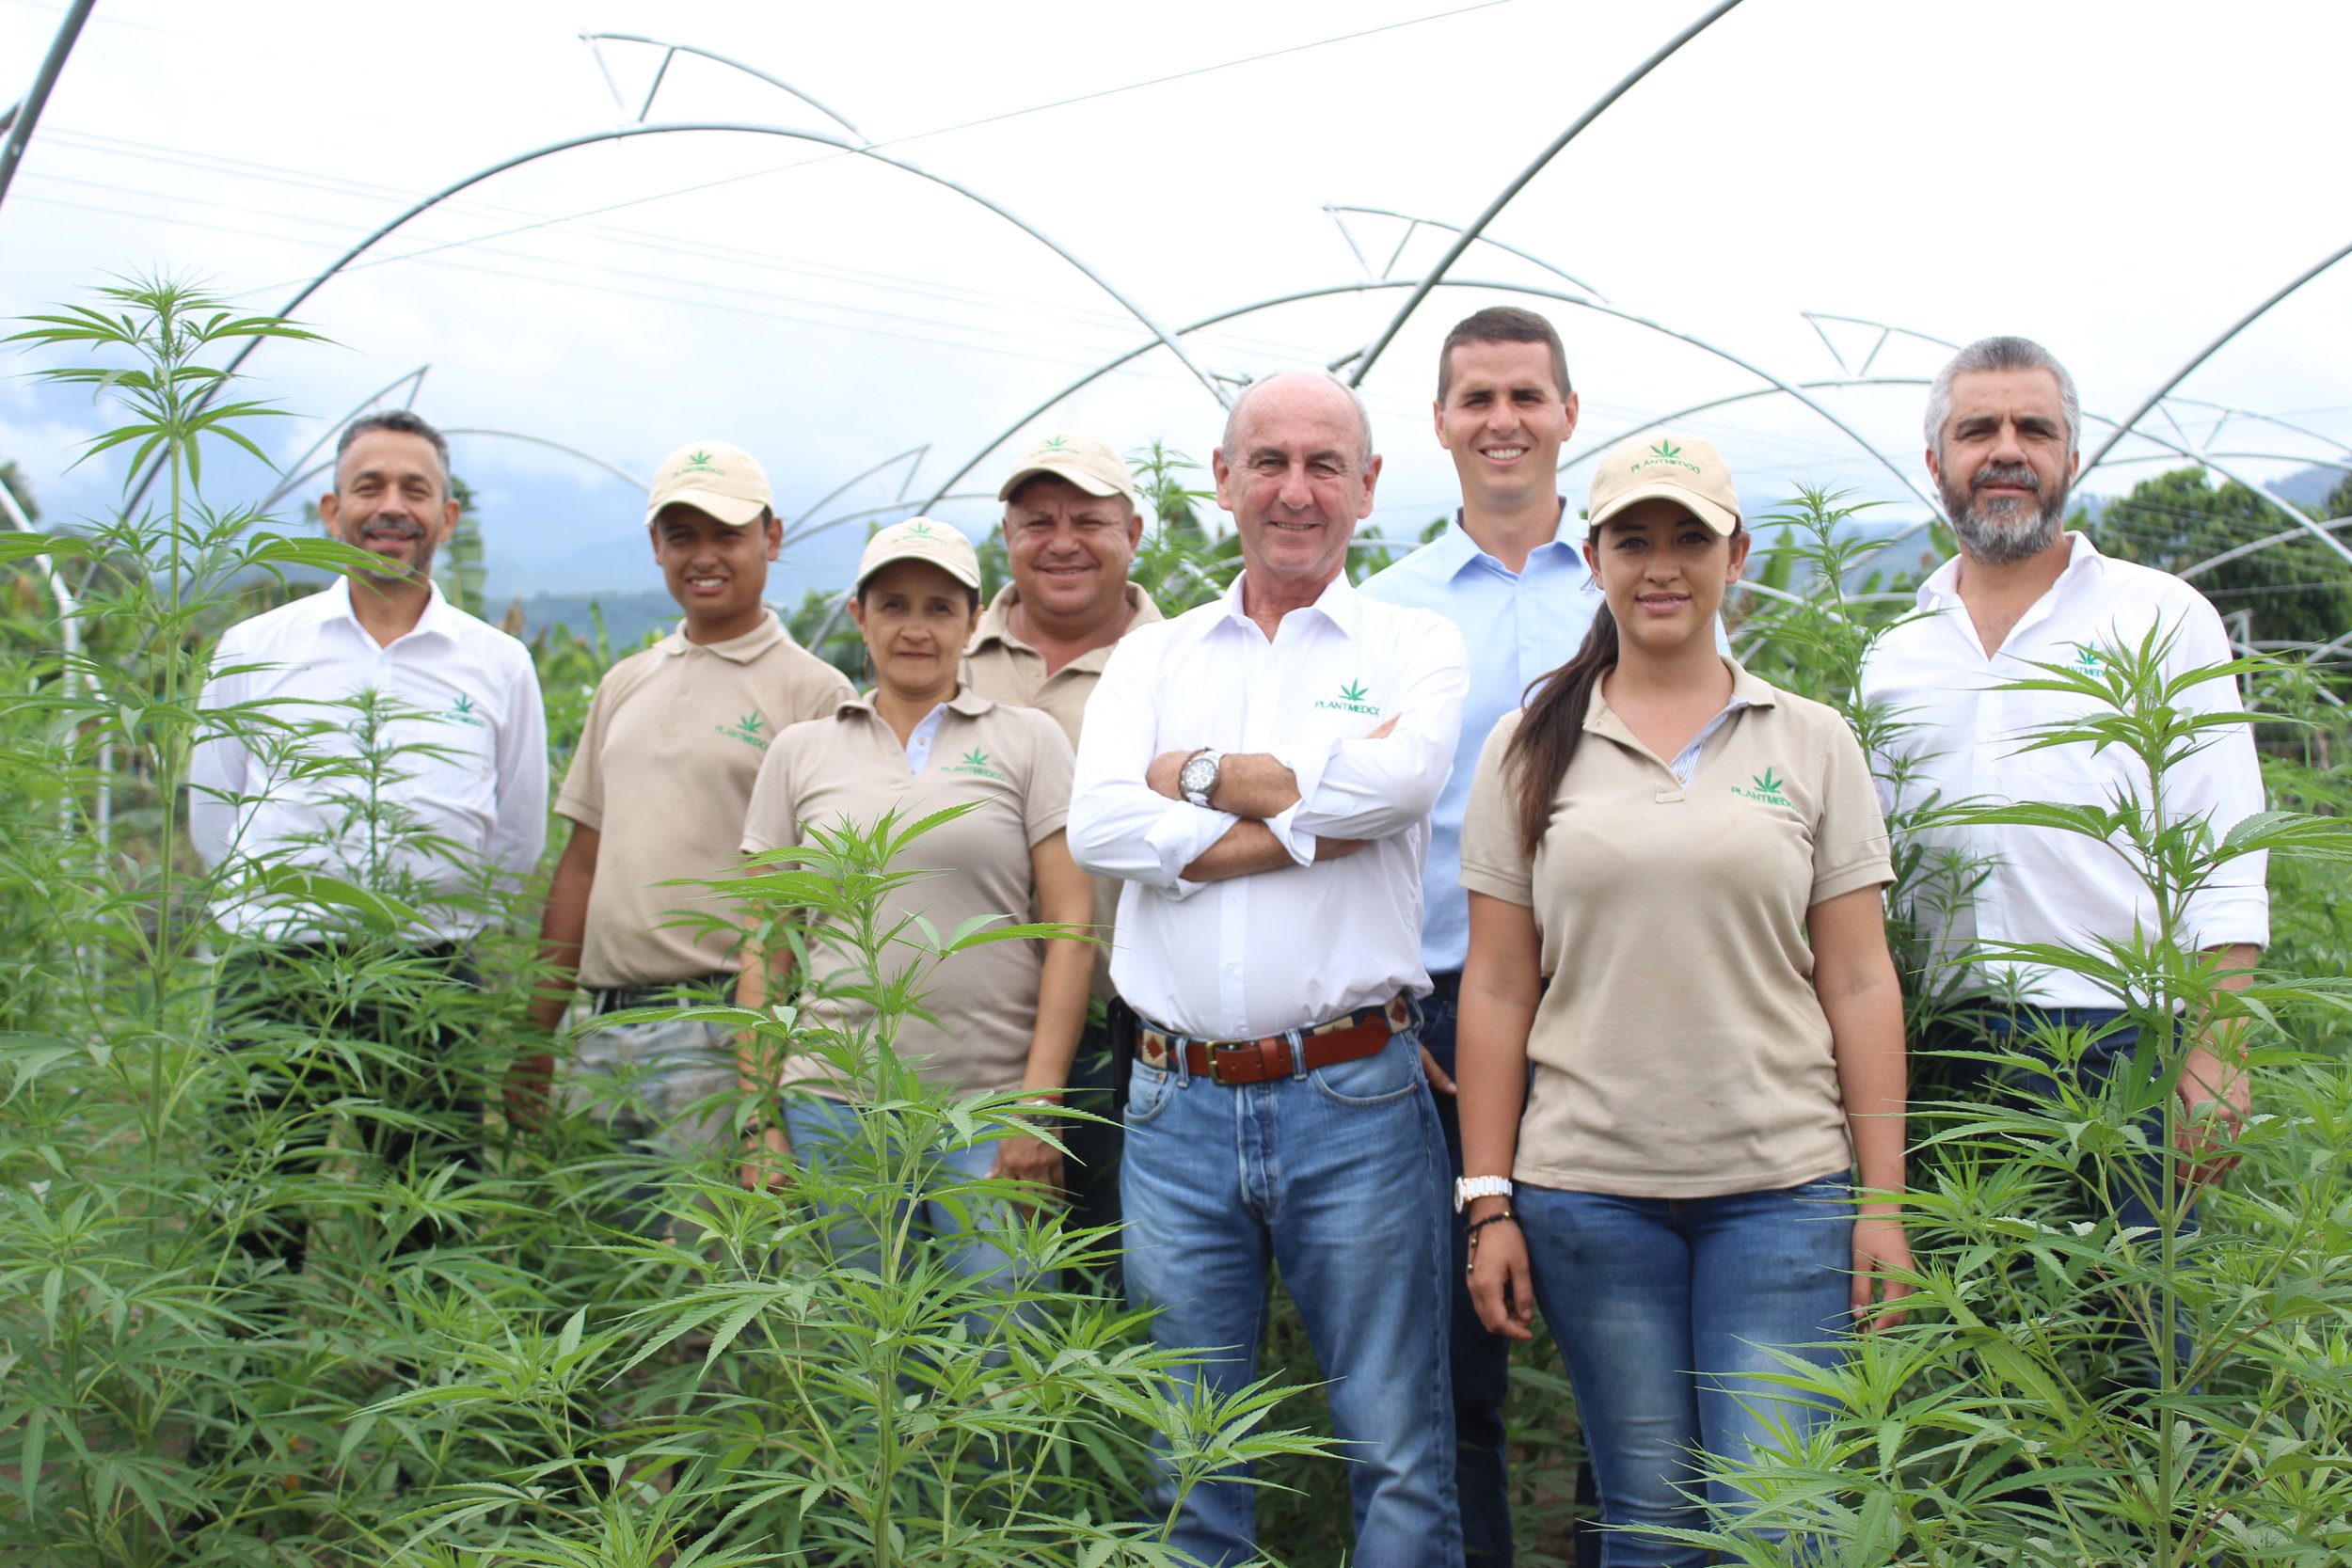 Almost 100 years of combined agro-industrial experience. - We have a proven track-record of value creation in large-scale LATAM agro-industrial businesses.In addition, our team has strong international capital markets experience, entrepreneurship in multiple successful ventures and deep regional and national government relations in Colombia.